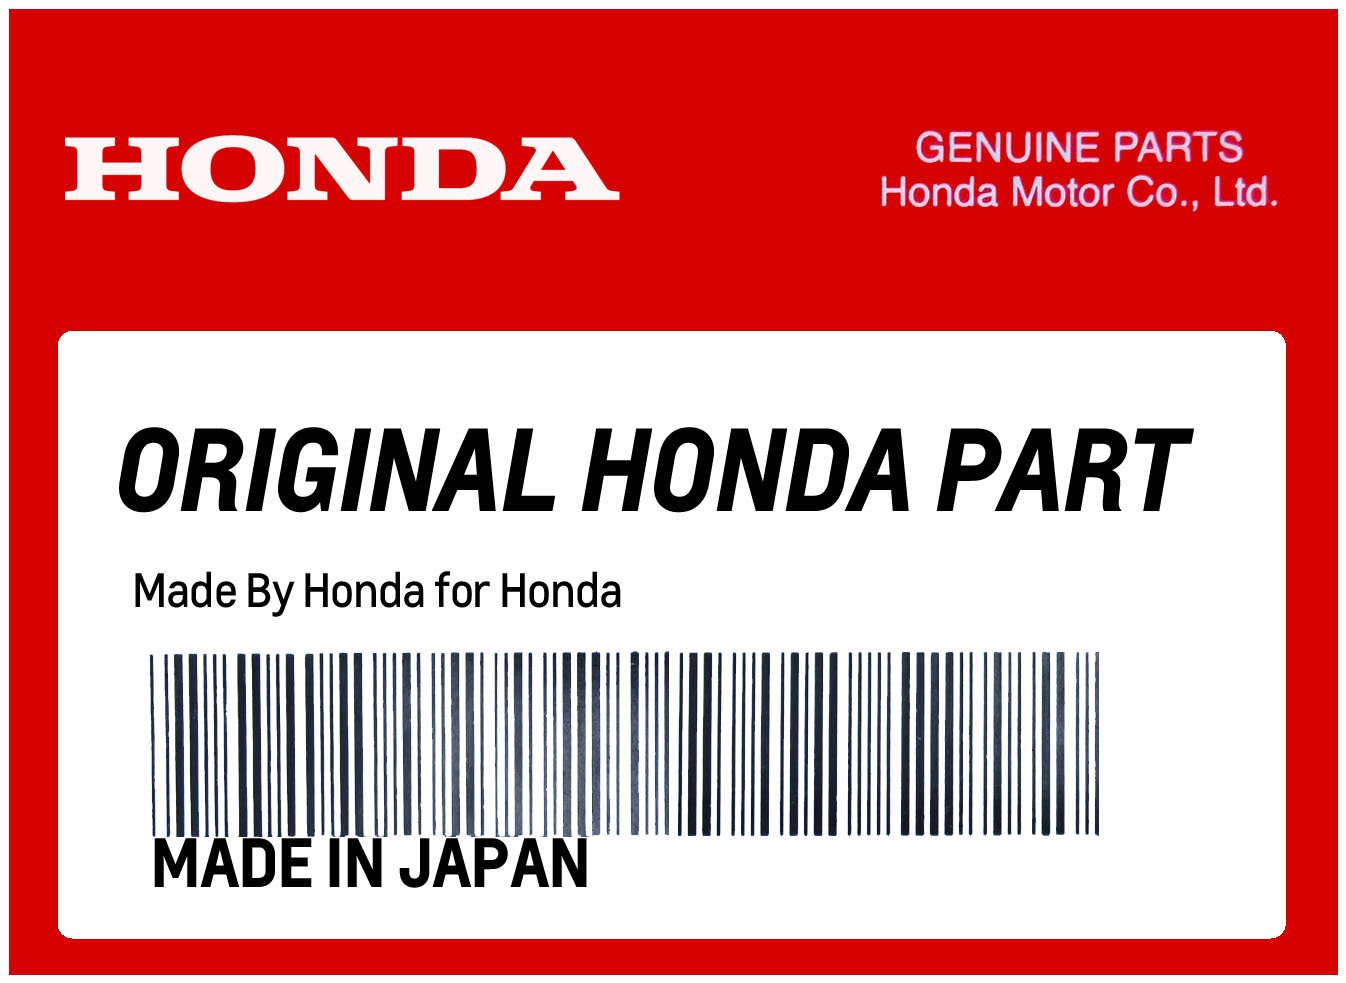 HONDA 52101-HM5-930 BOOT JOINT